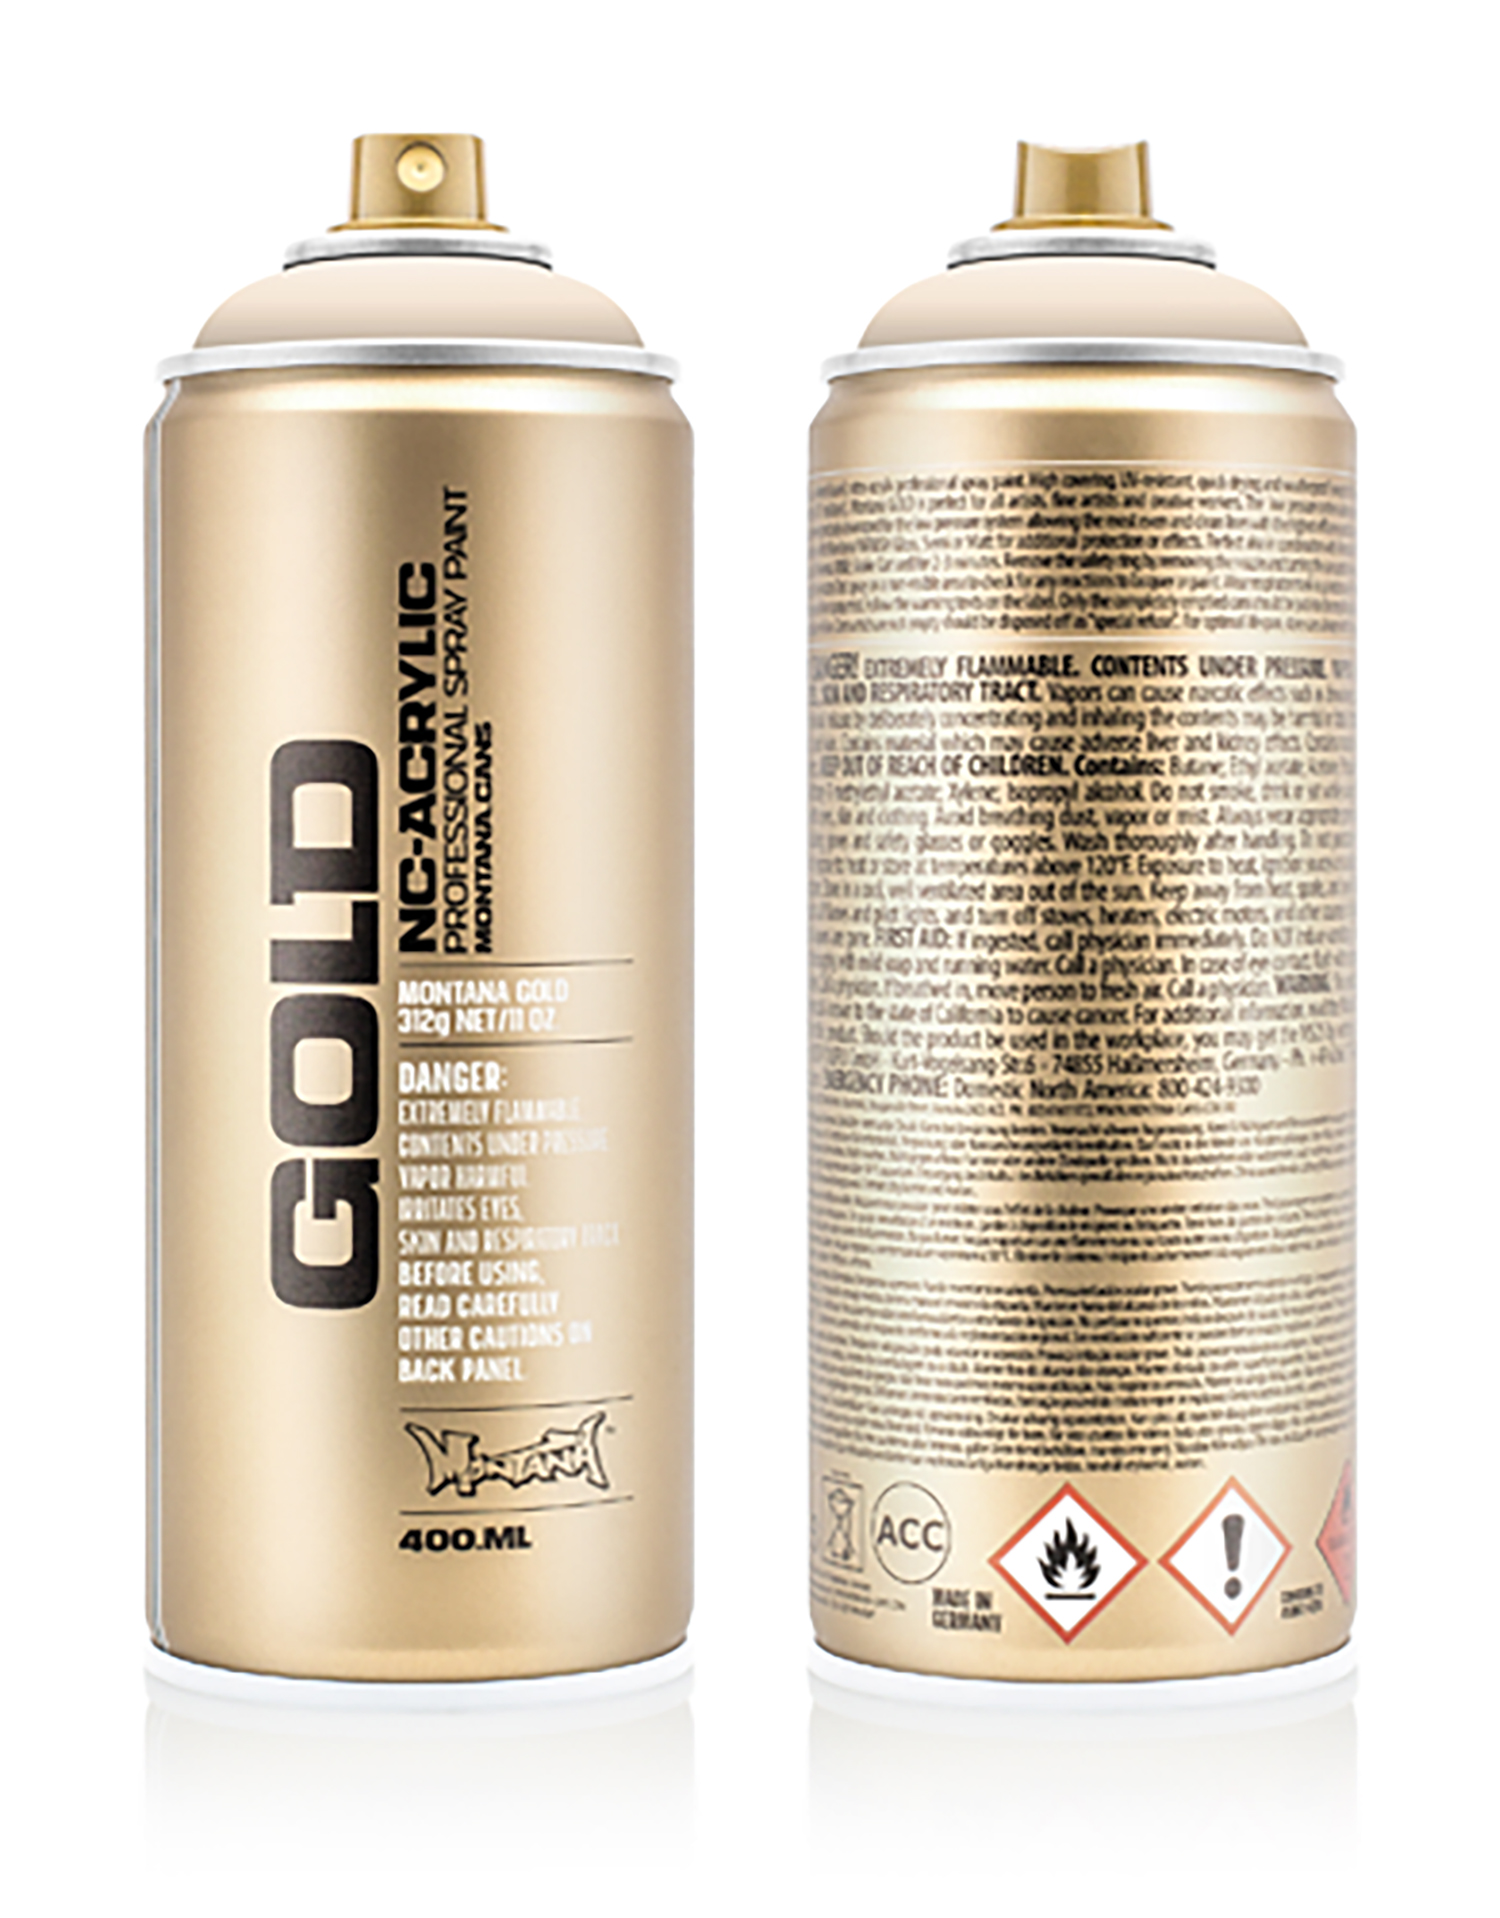 MONTANA-GOLD-SPRAY-400ML-G-1410